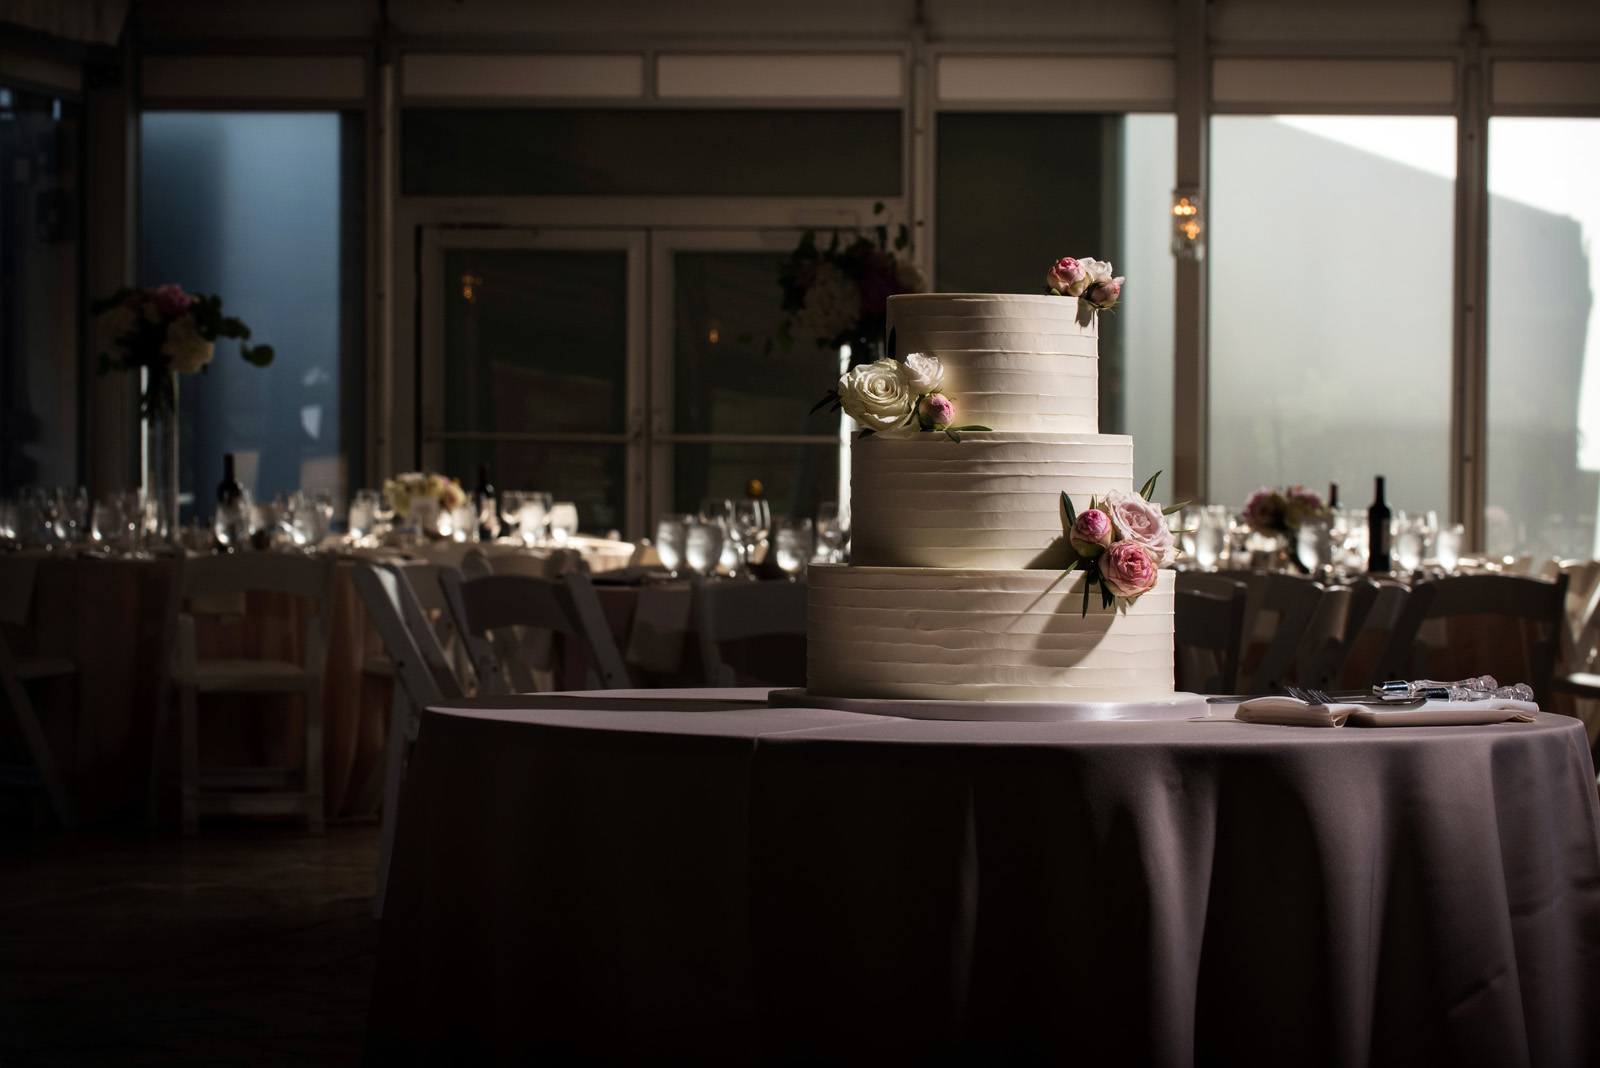 Artistically lit wedding cake